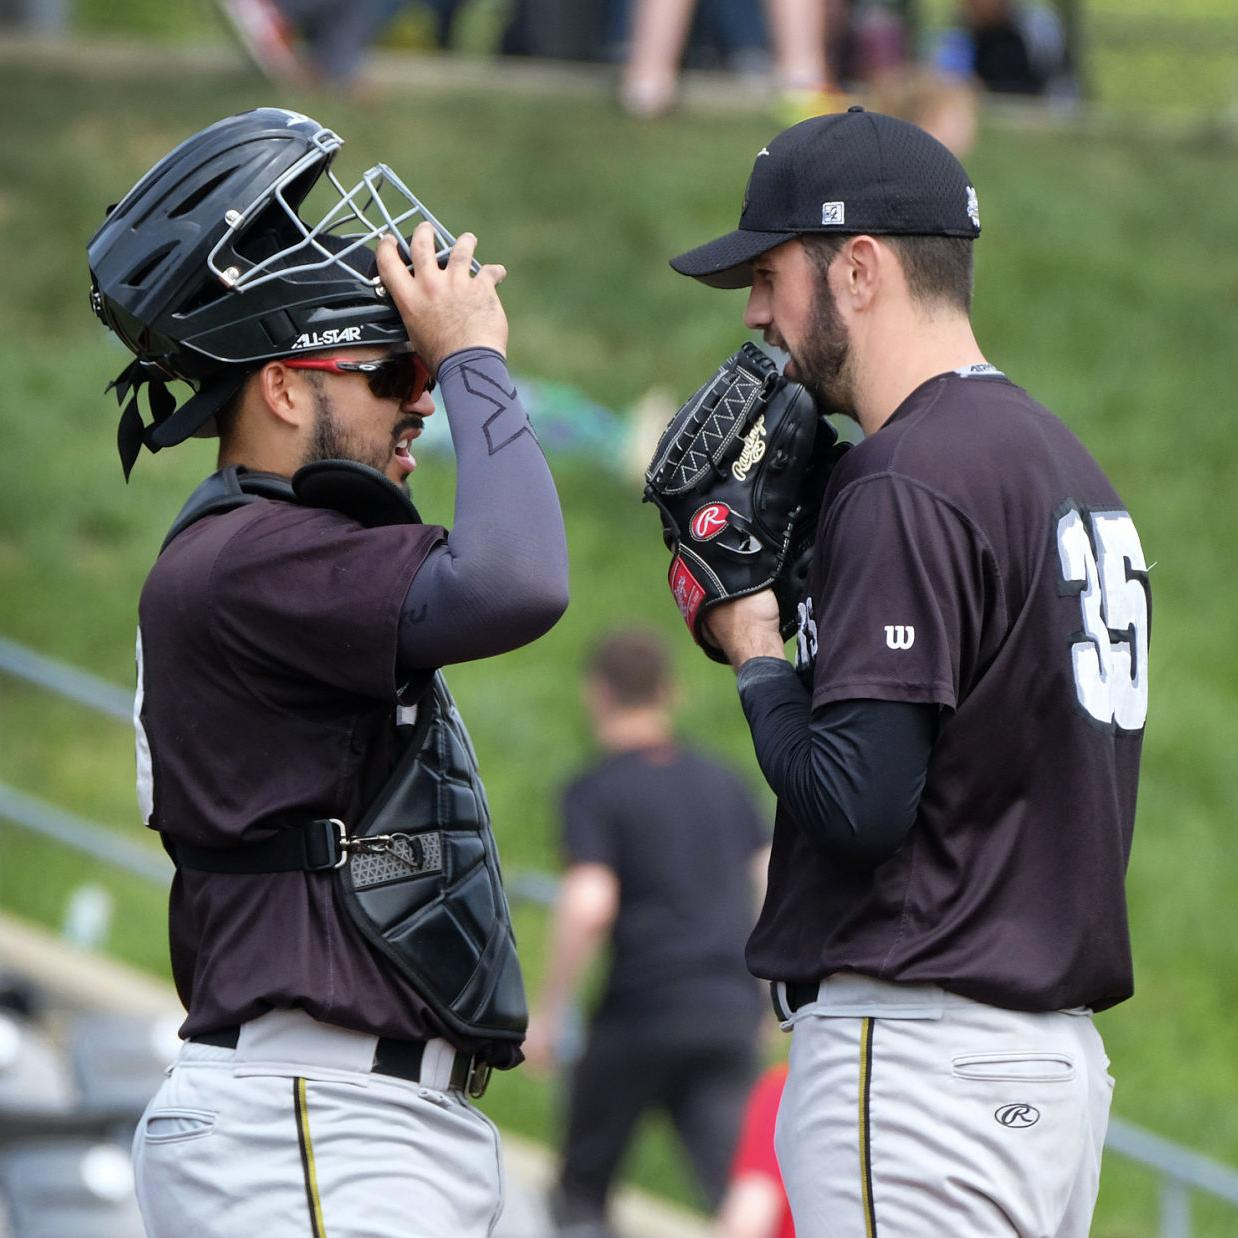 Frontier League Baseball | Nieto brings MLB experience to